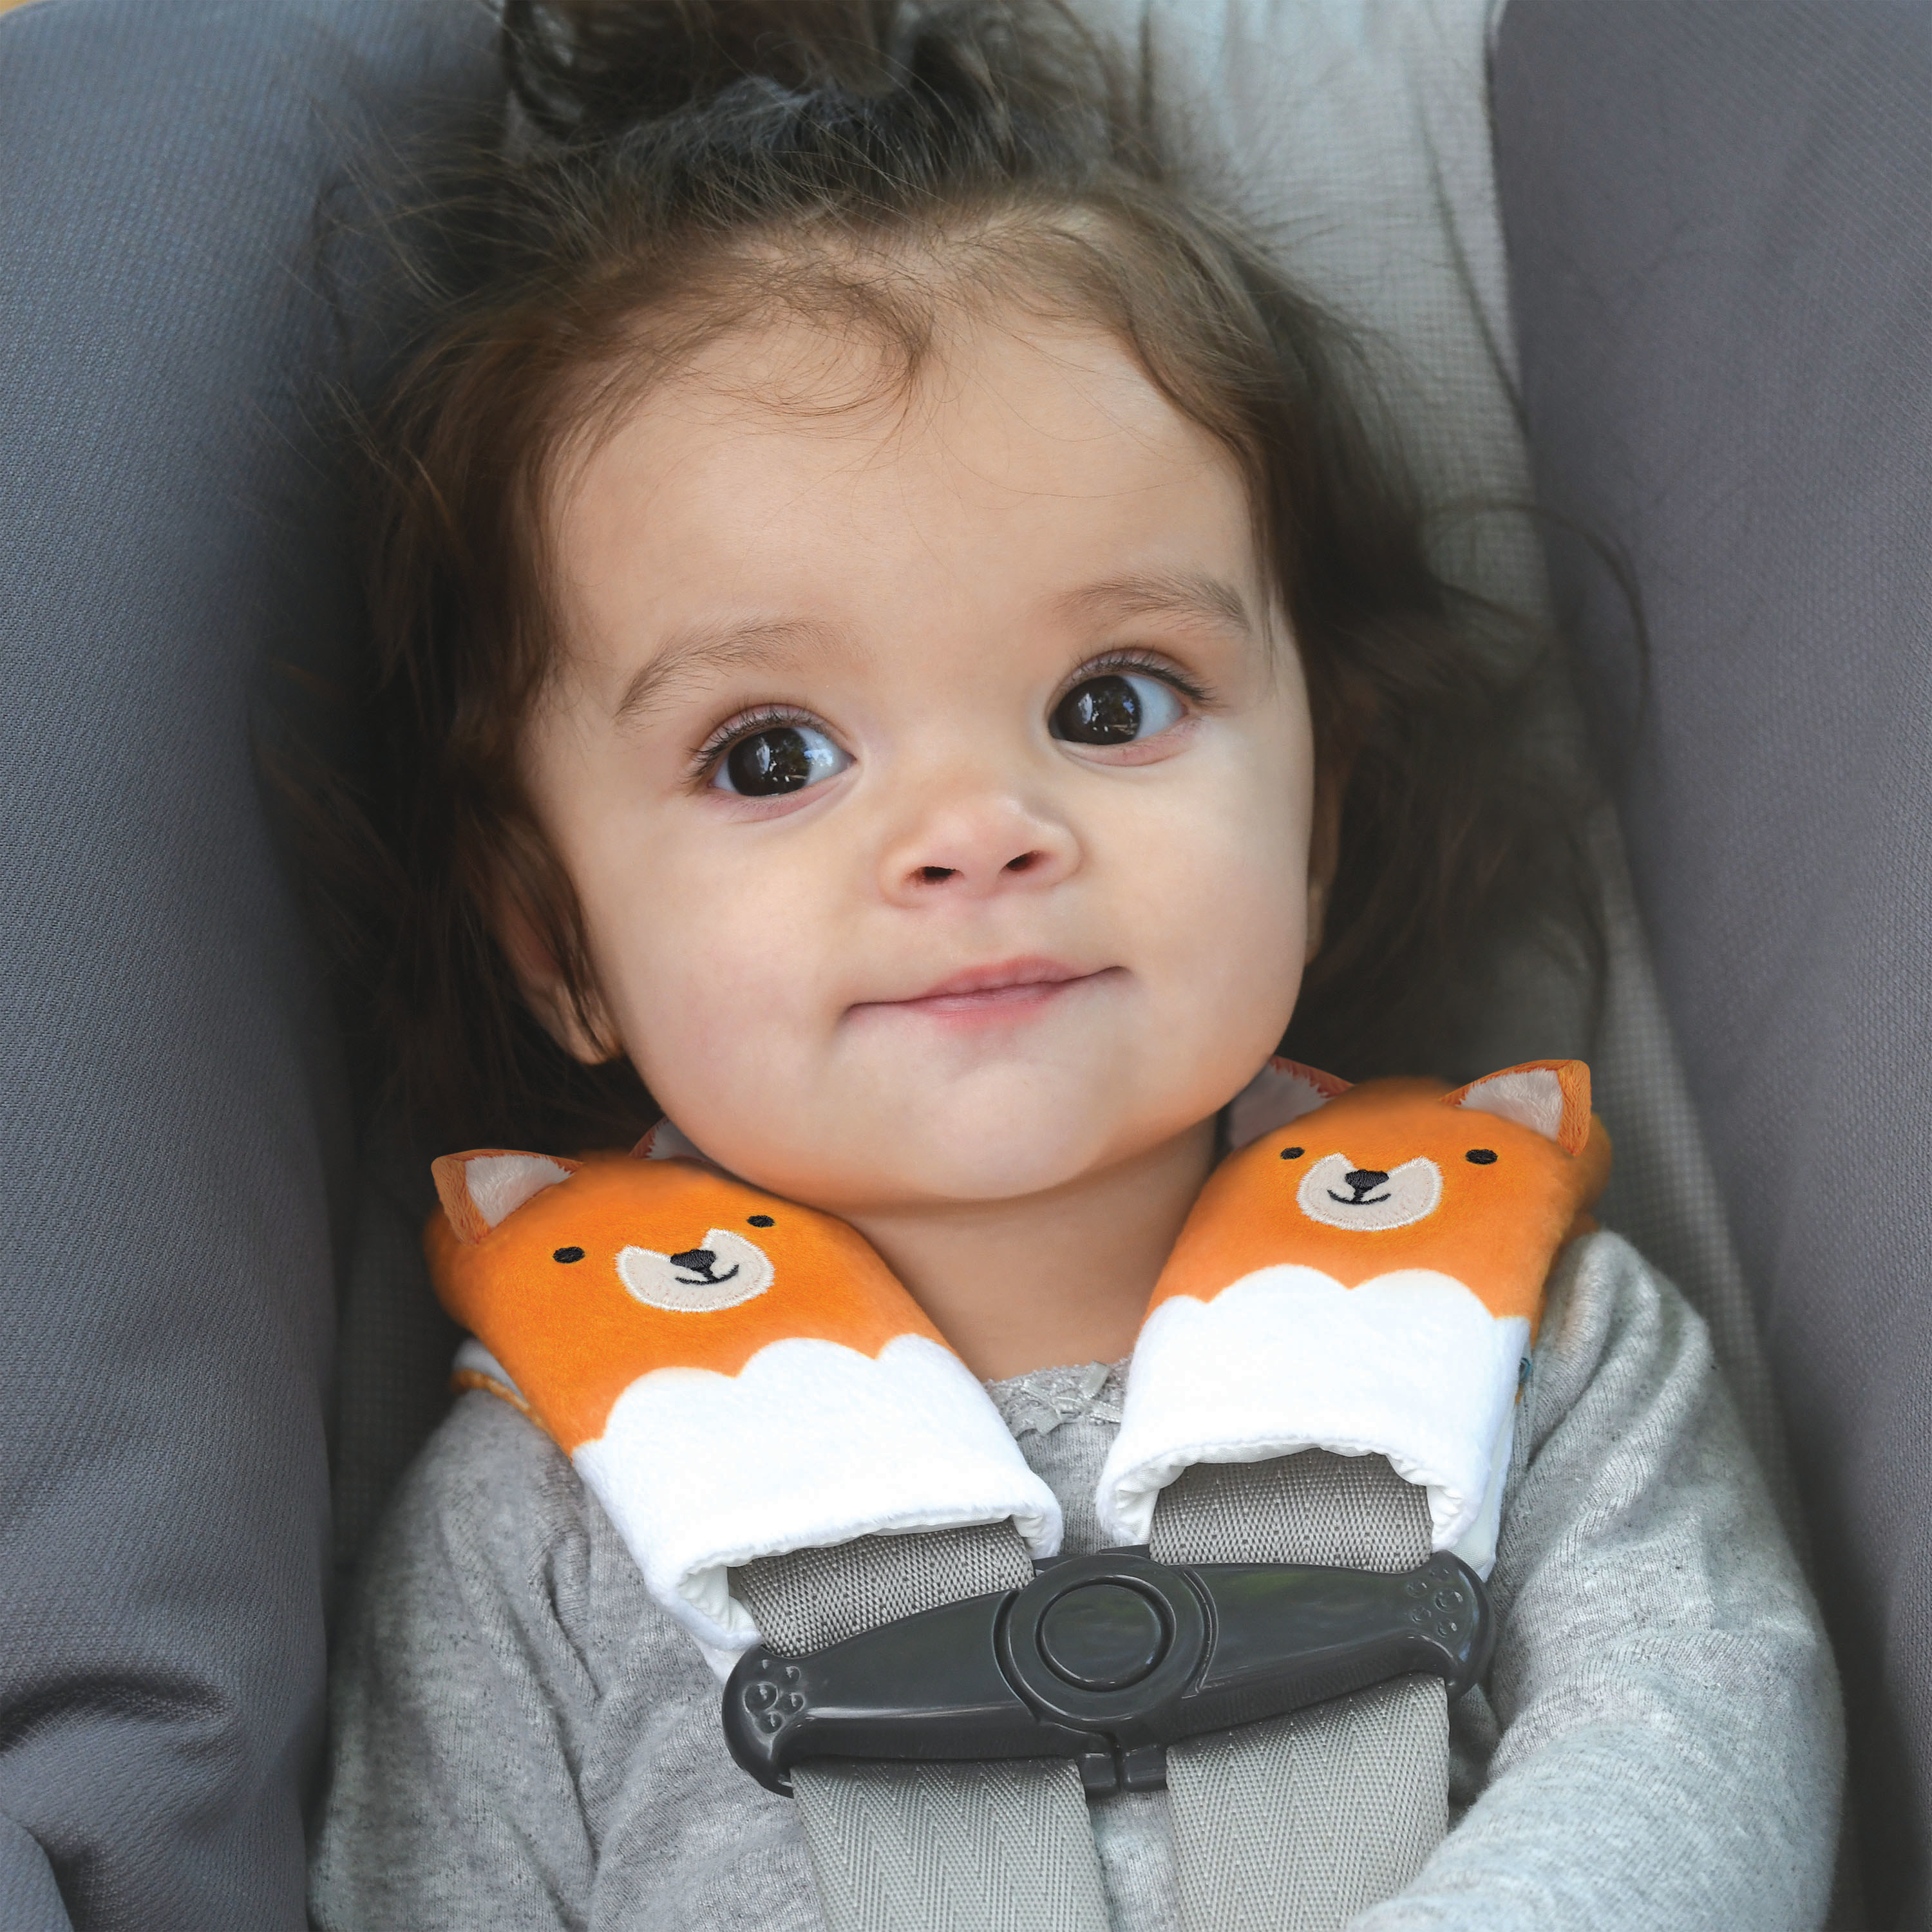 child in a car seat with fox-shaped strap covers on the car seat straps